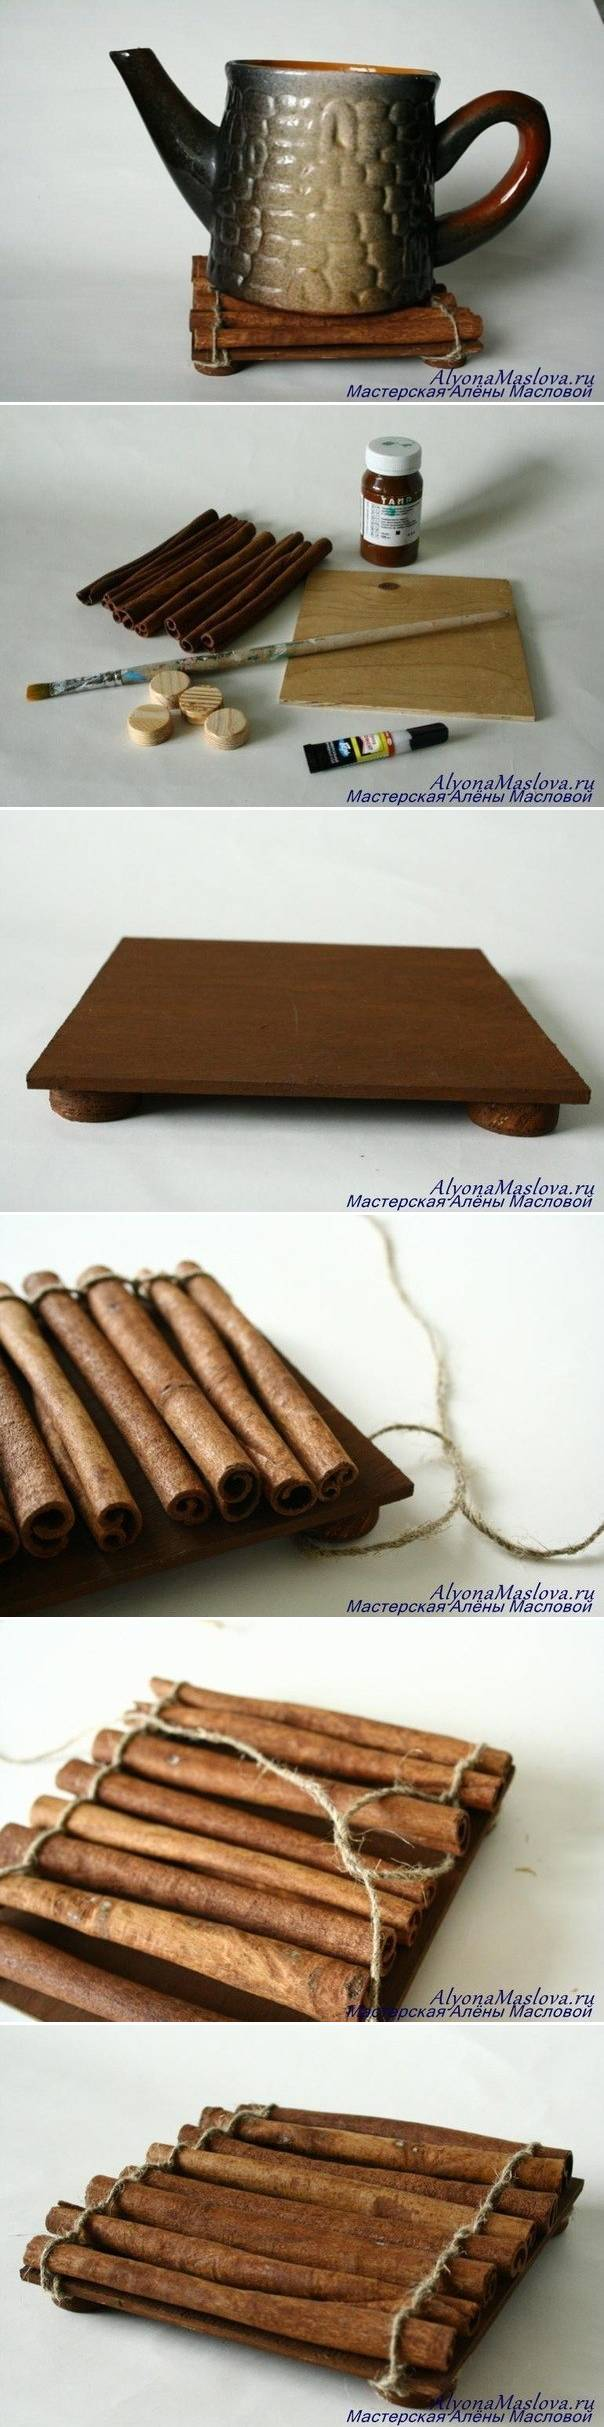 Cinnamon sticks for crafts - Diy Cinnamon Sticks Fragrant Stand Diy Projects Image 933047 By